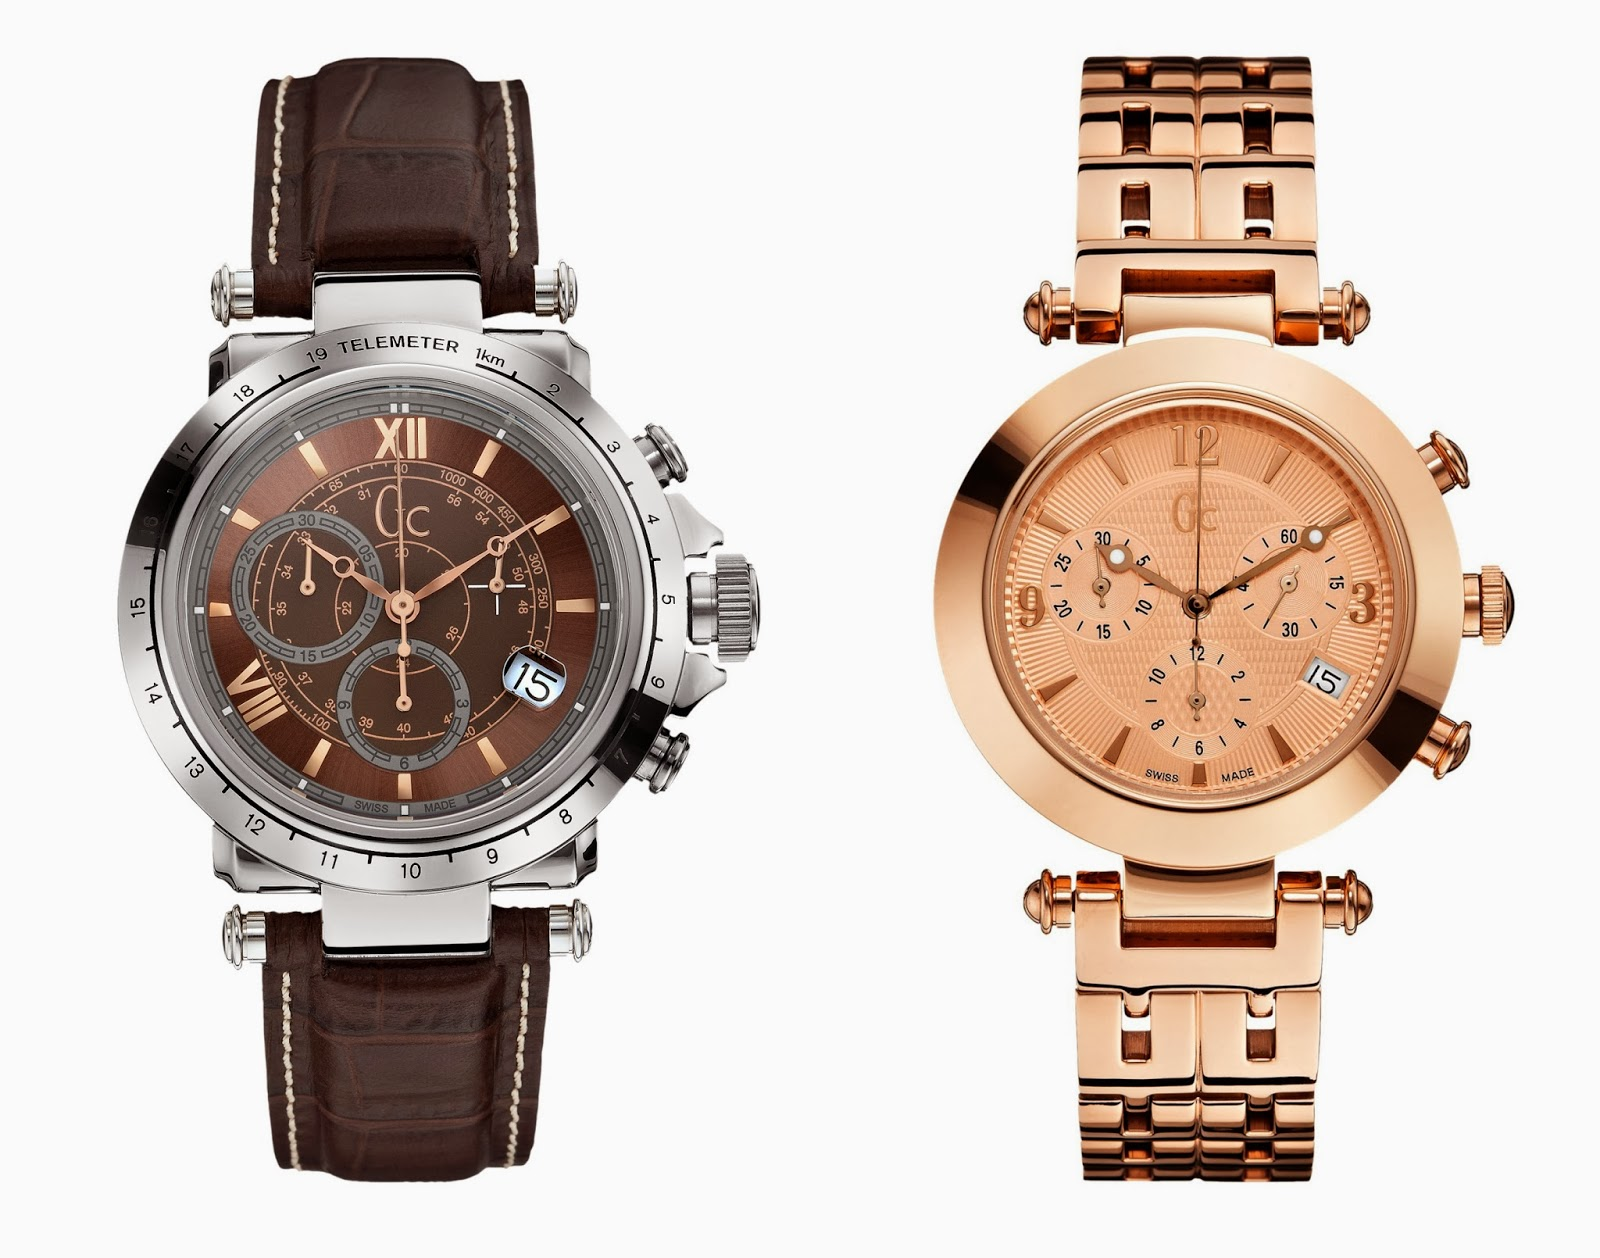 Havaianas, GUESS and Gc Watches 2014 Preview | Food ...